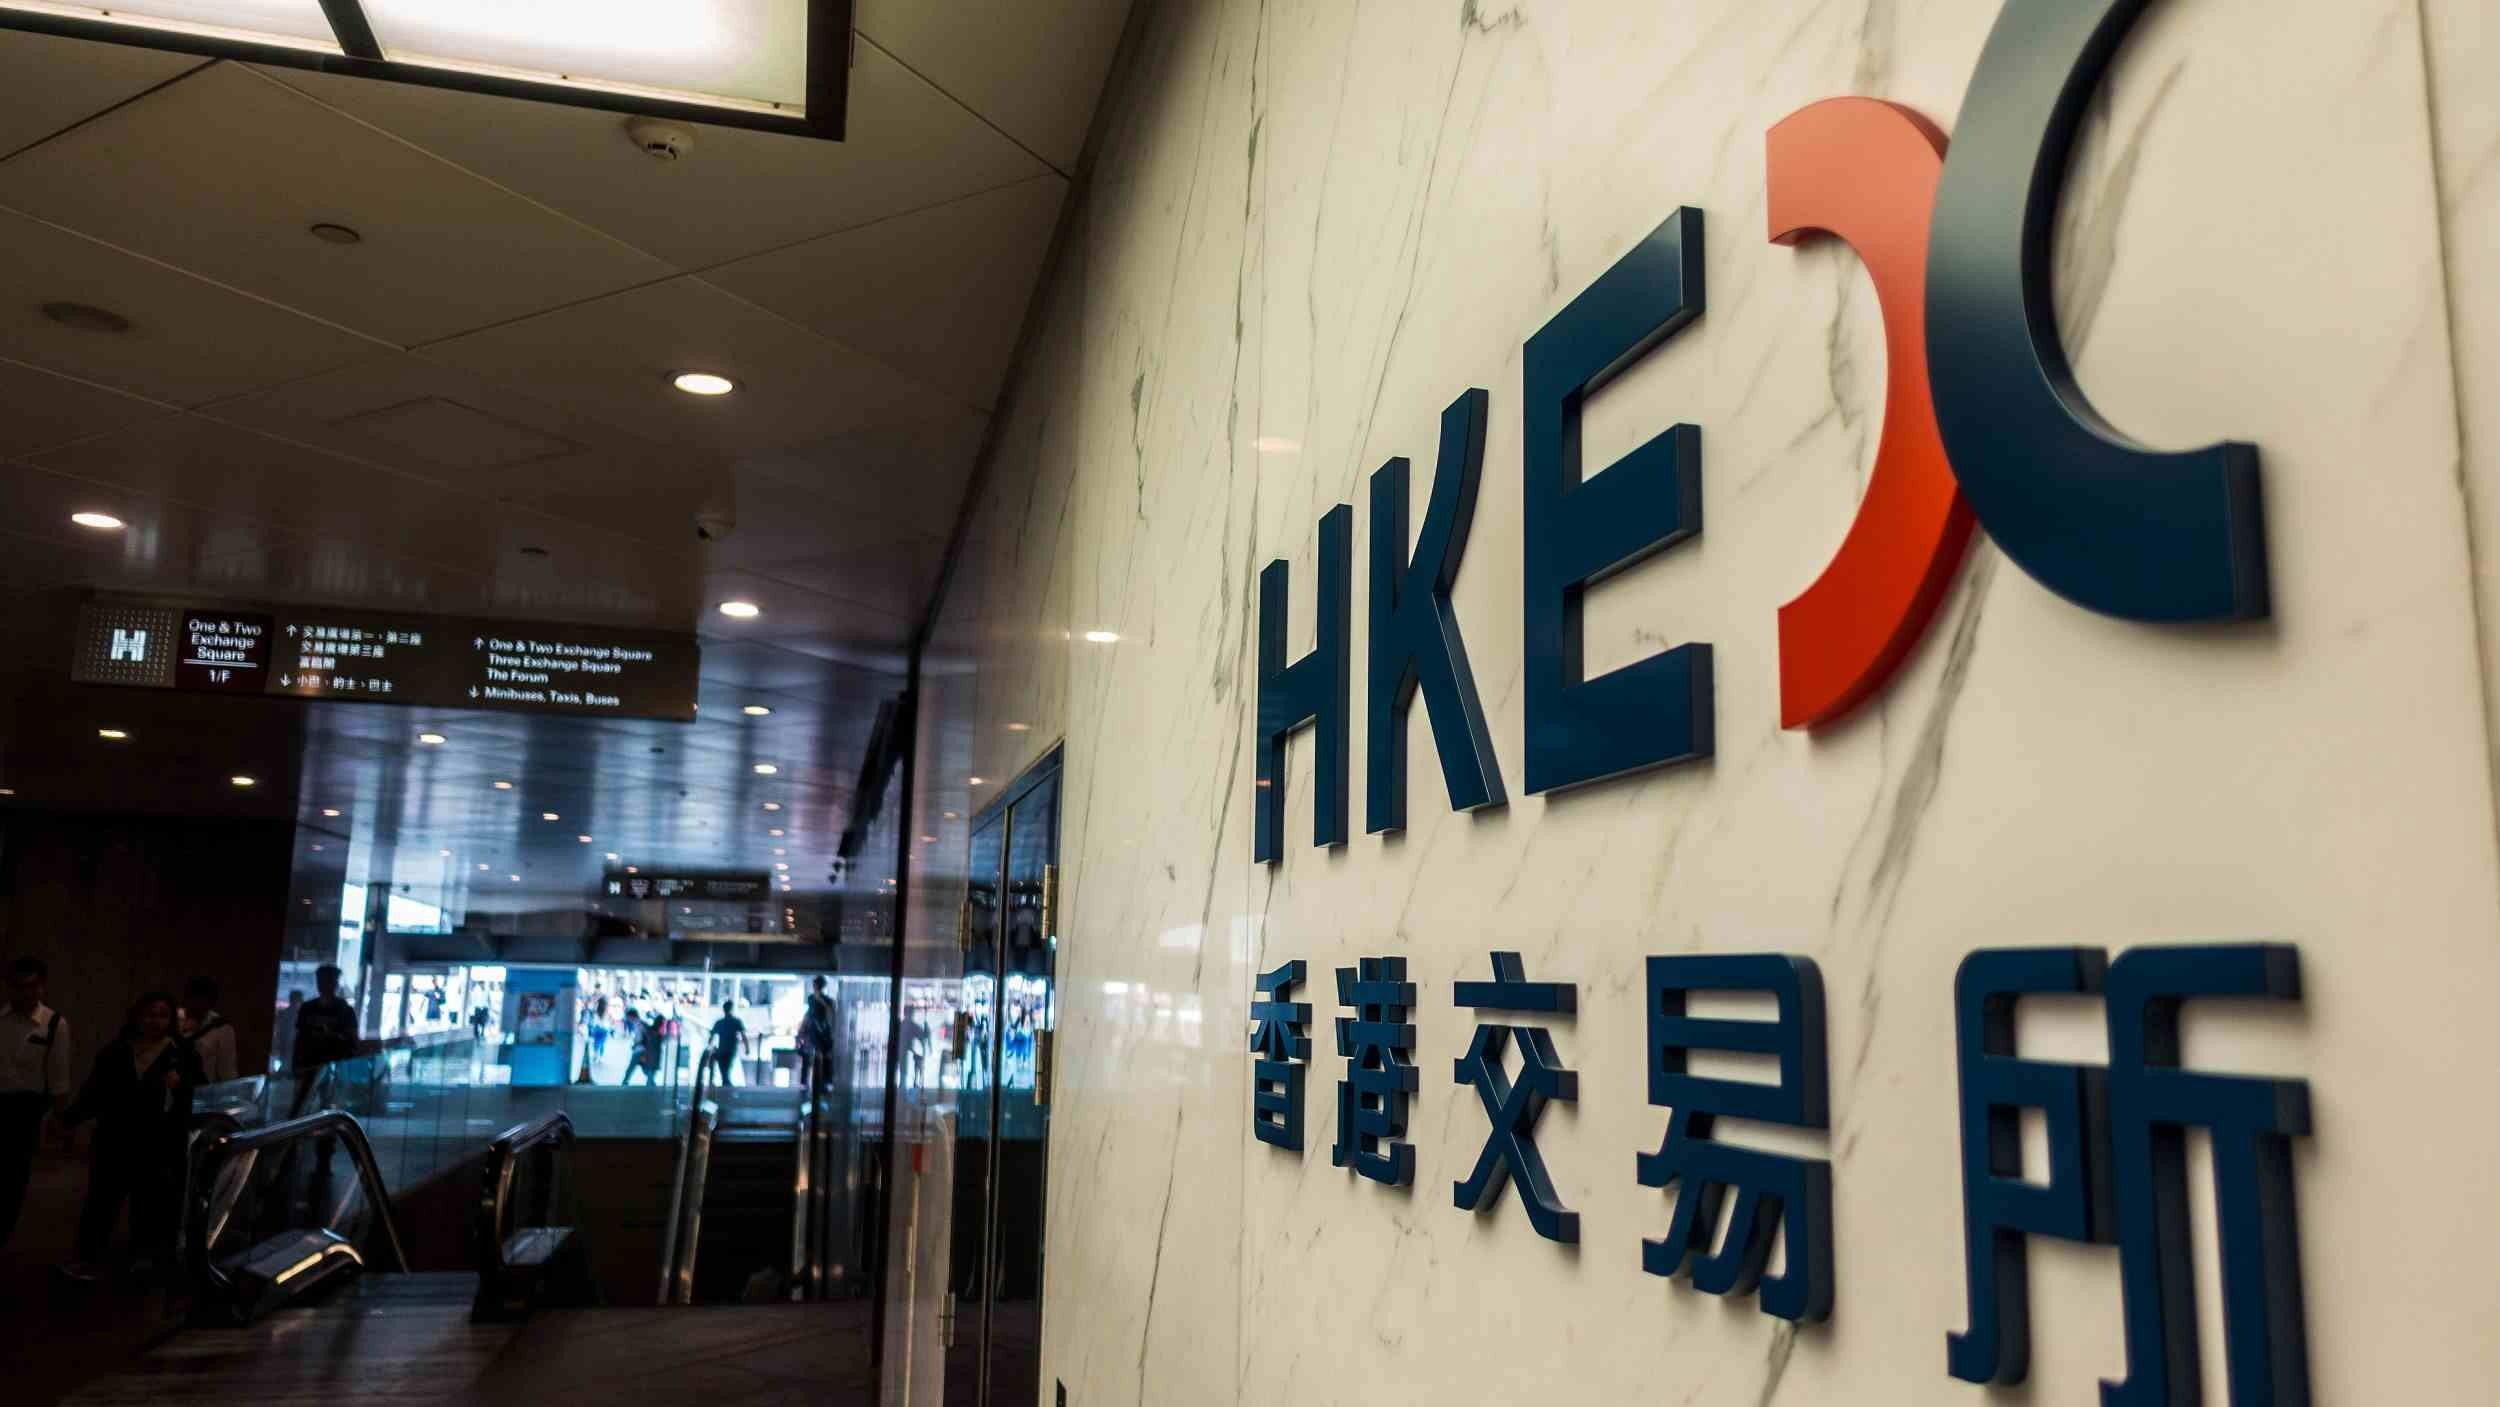 Dawn of a new era? Dual-class shares & biotech IPOs accepted in Hong Kong